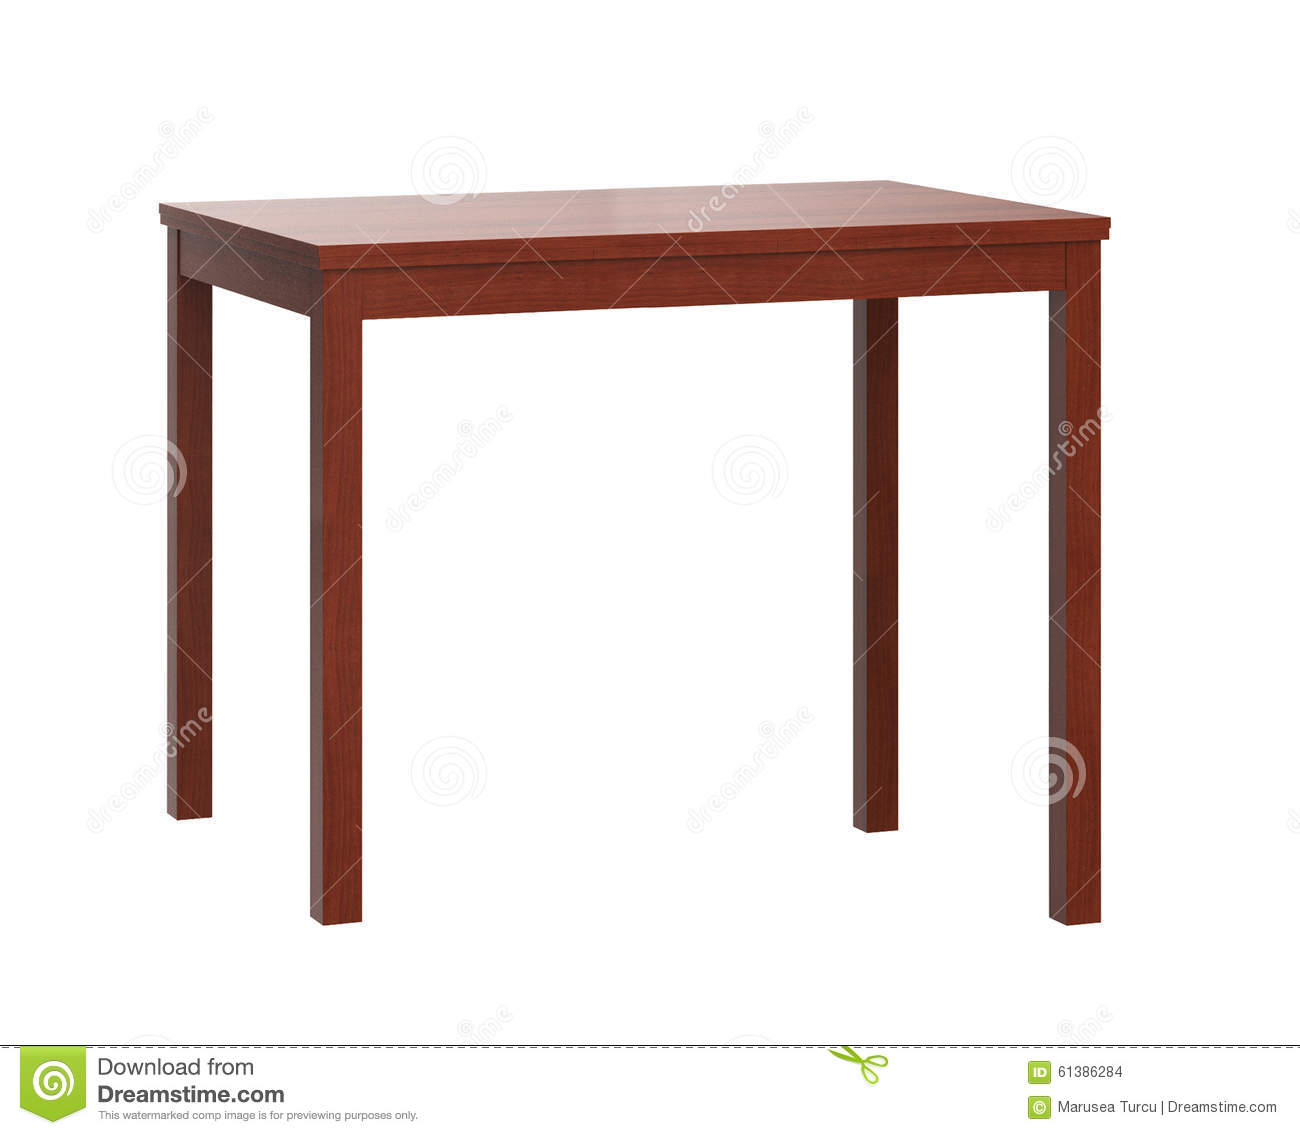 Wooden Table On White Background Stock Photo - Image: 61386284